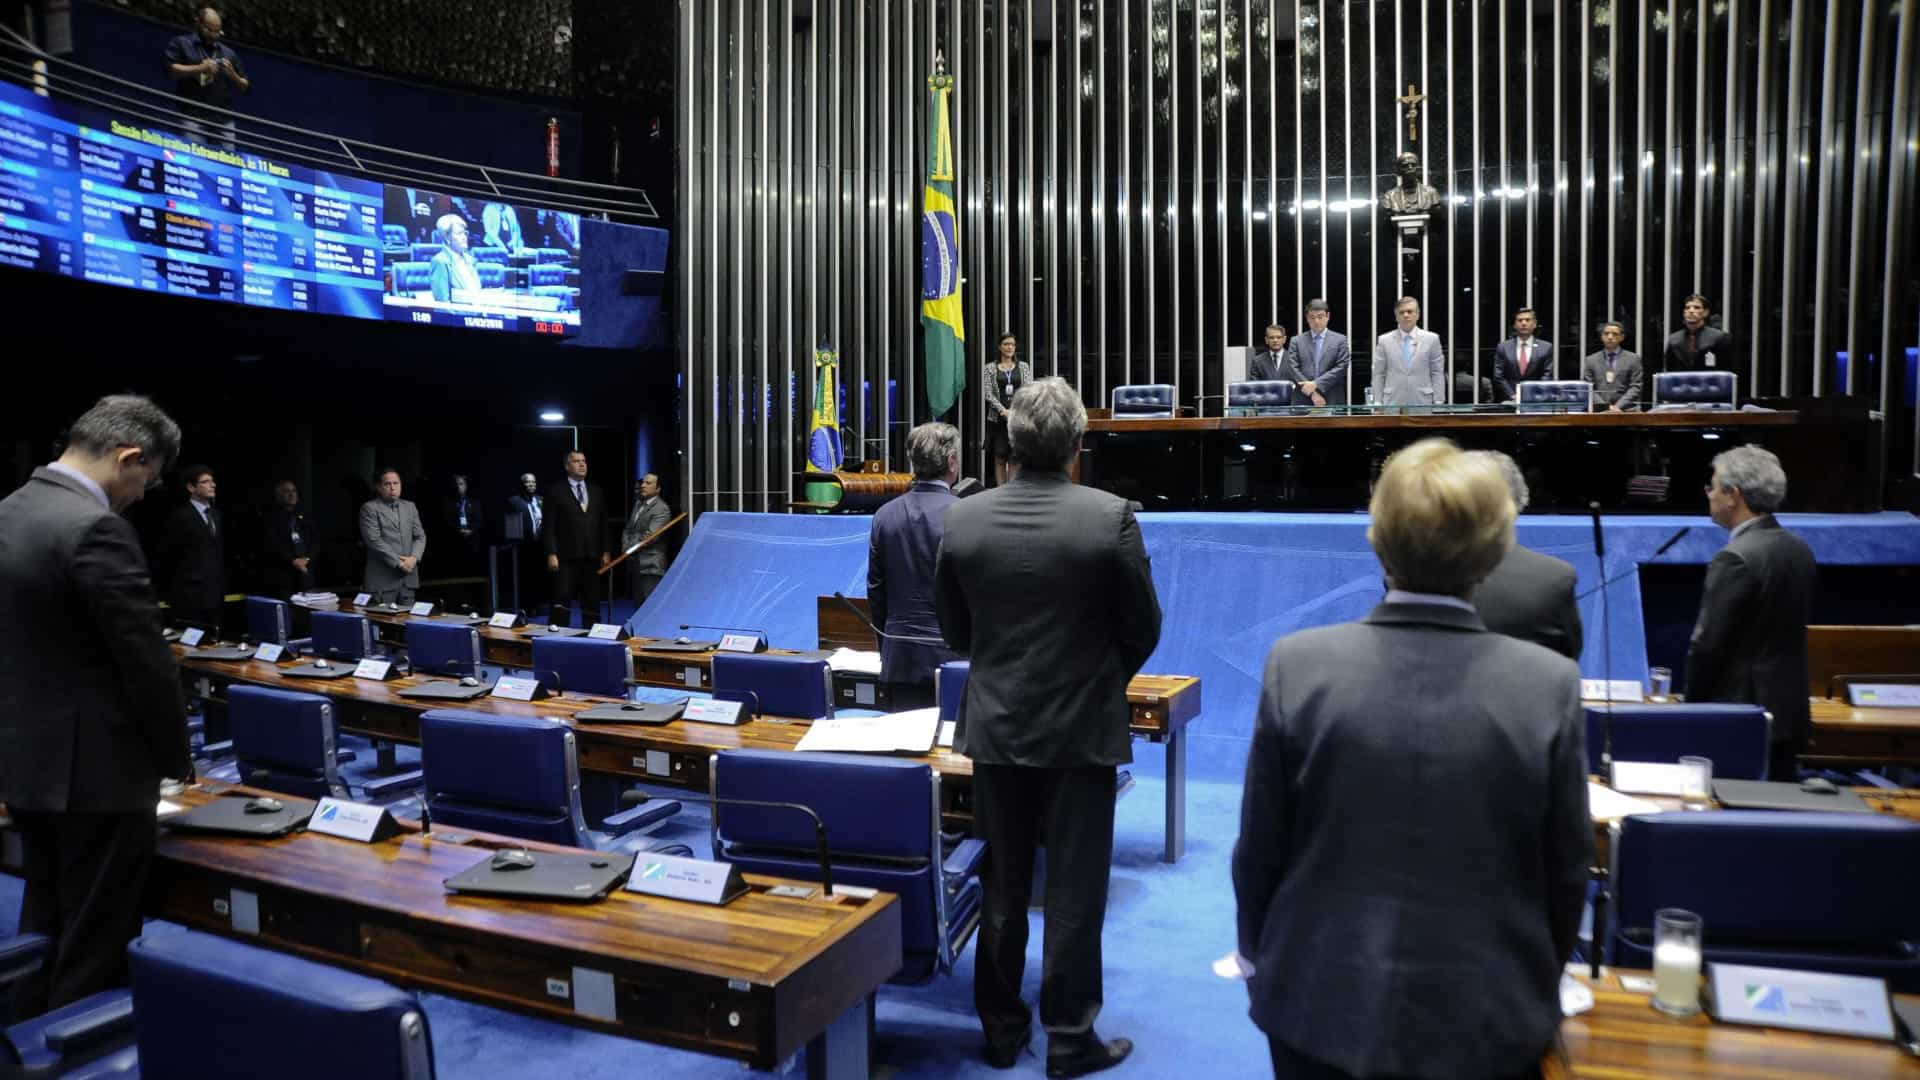 Assassinato de vereadora é atentado à democracia, avaliam senadores